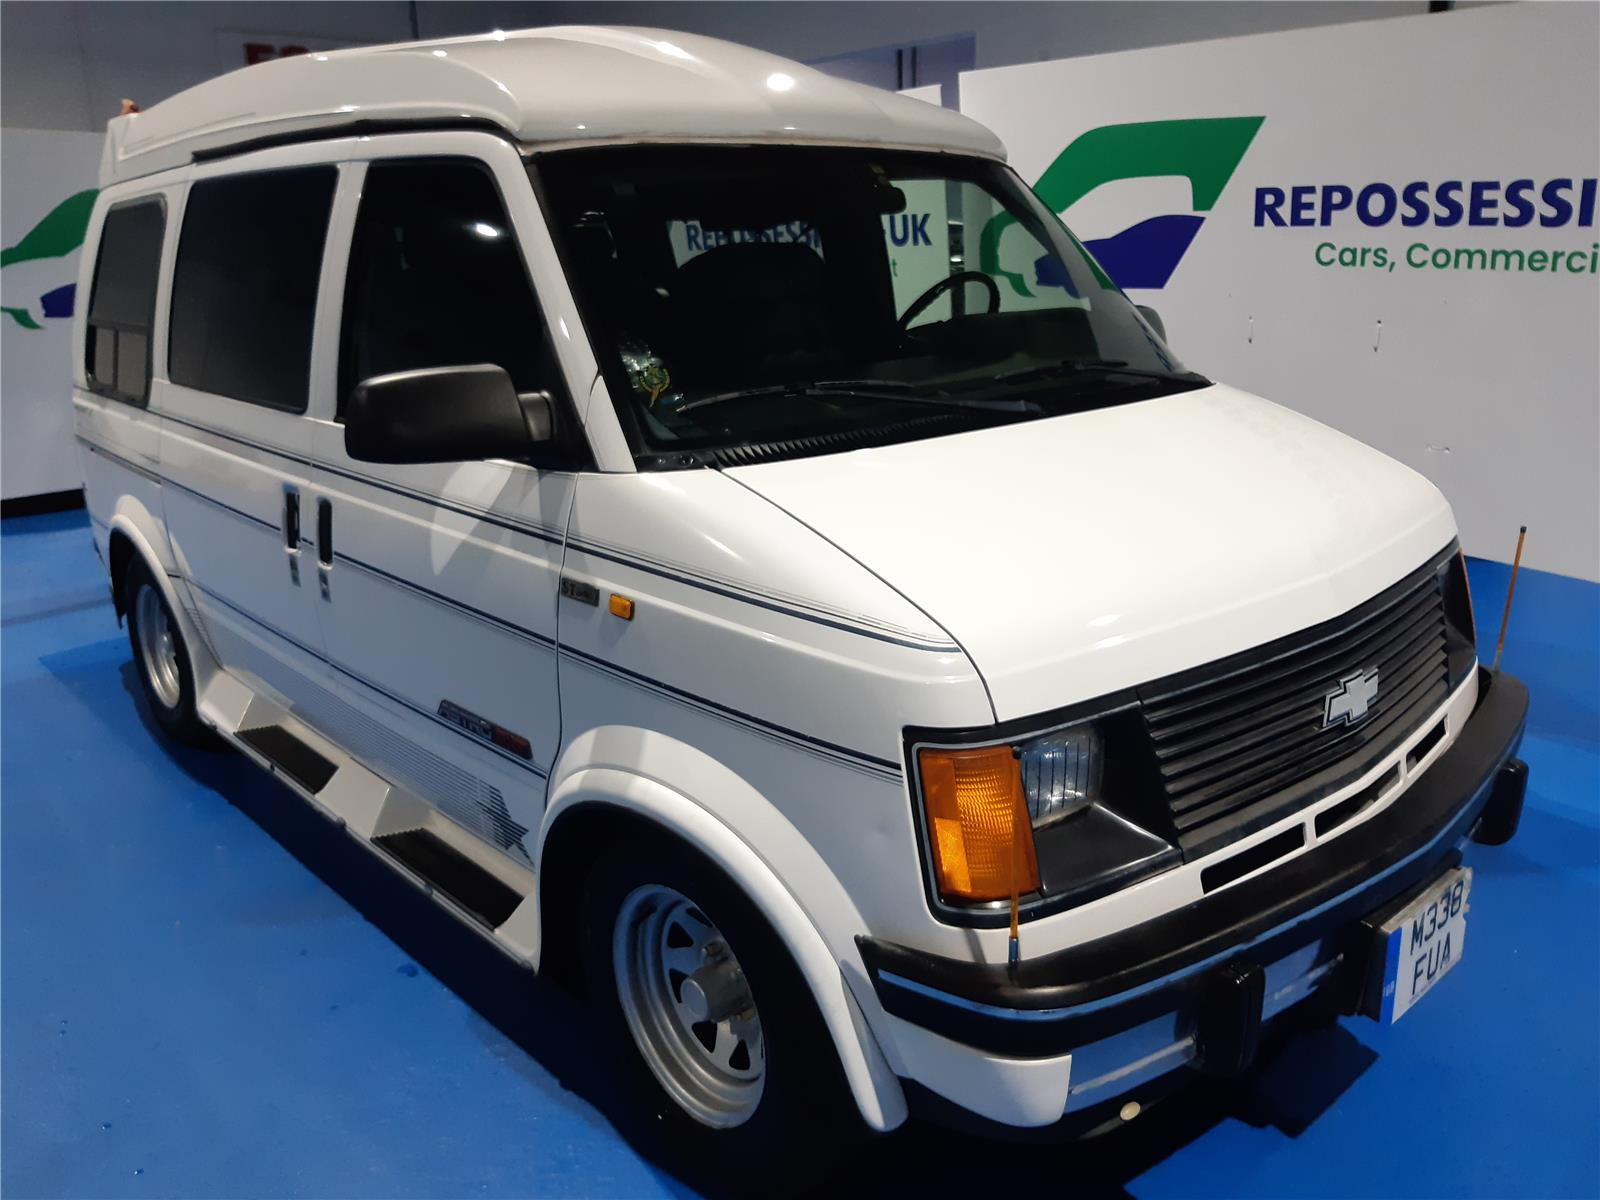 1994 CHEVROLET ASTROVAN 4295 PETROL AUTOMATIC 4 Speed MPV